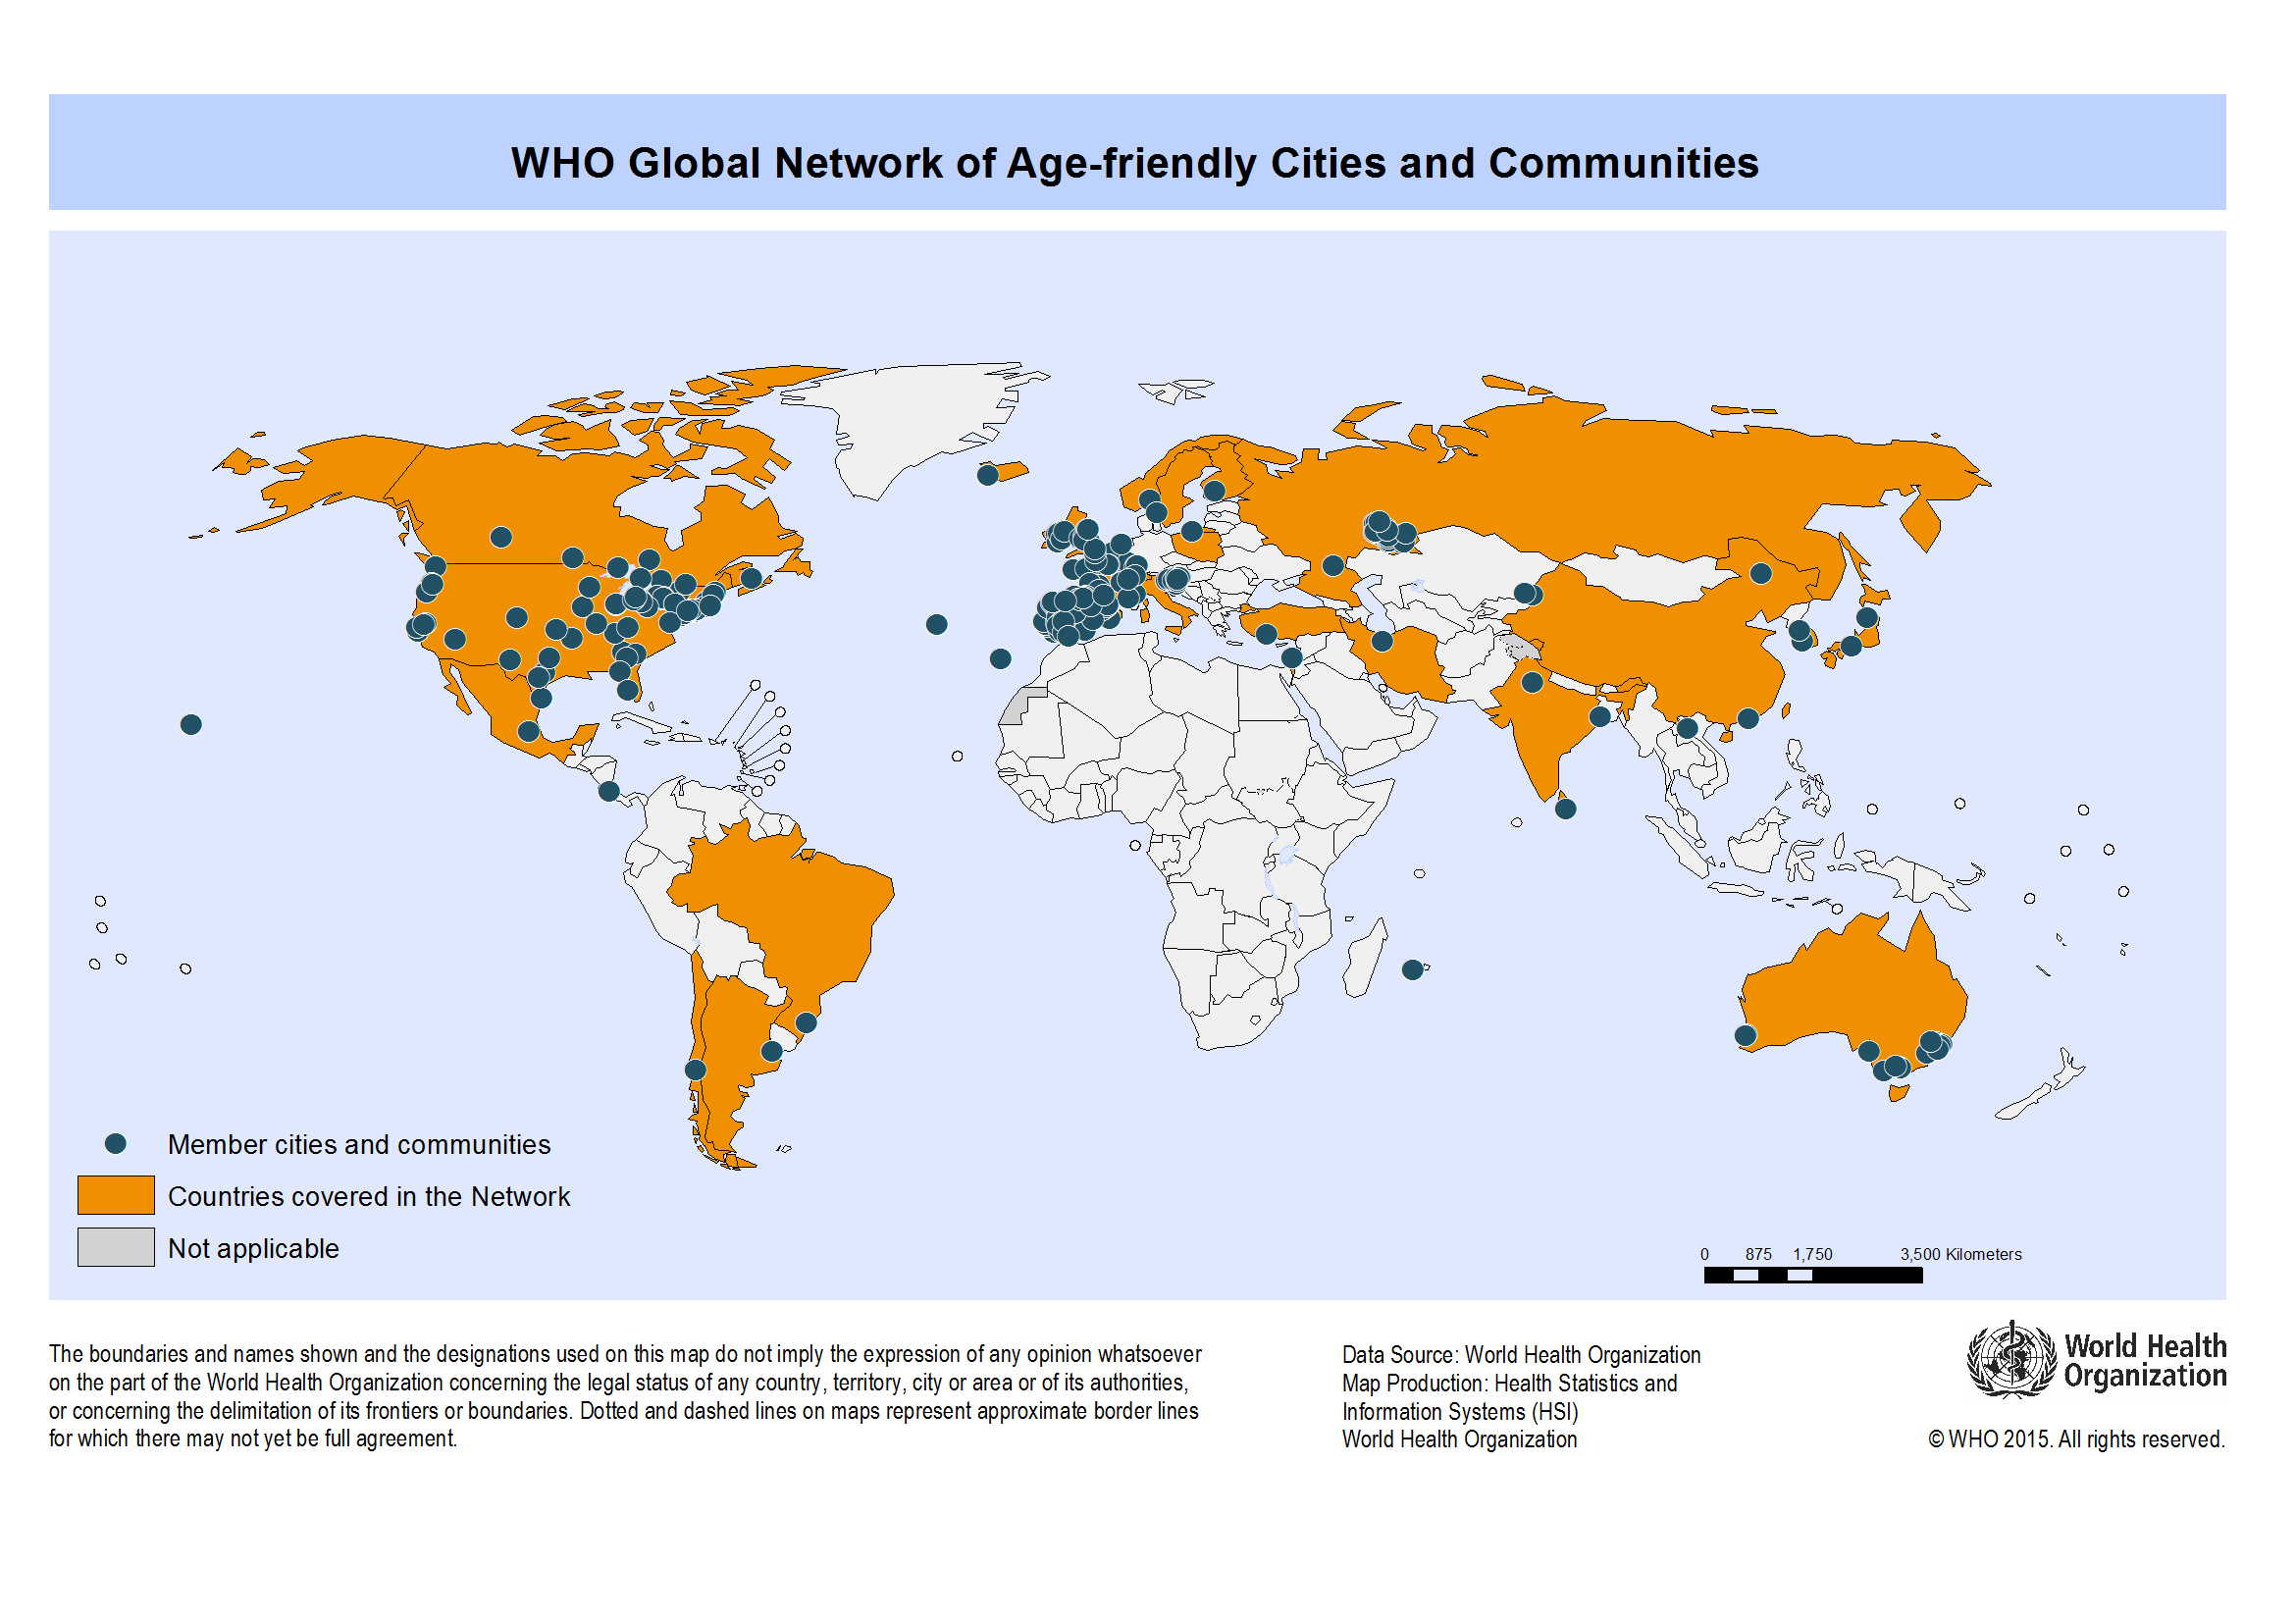 About the Global Network for Agefriendly Cities and Communities